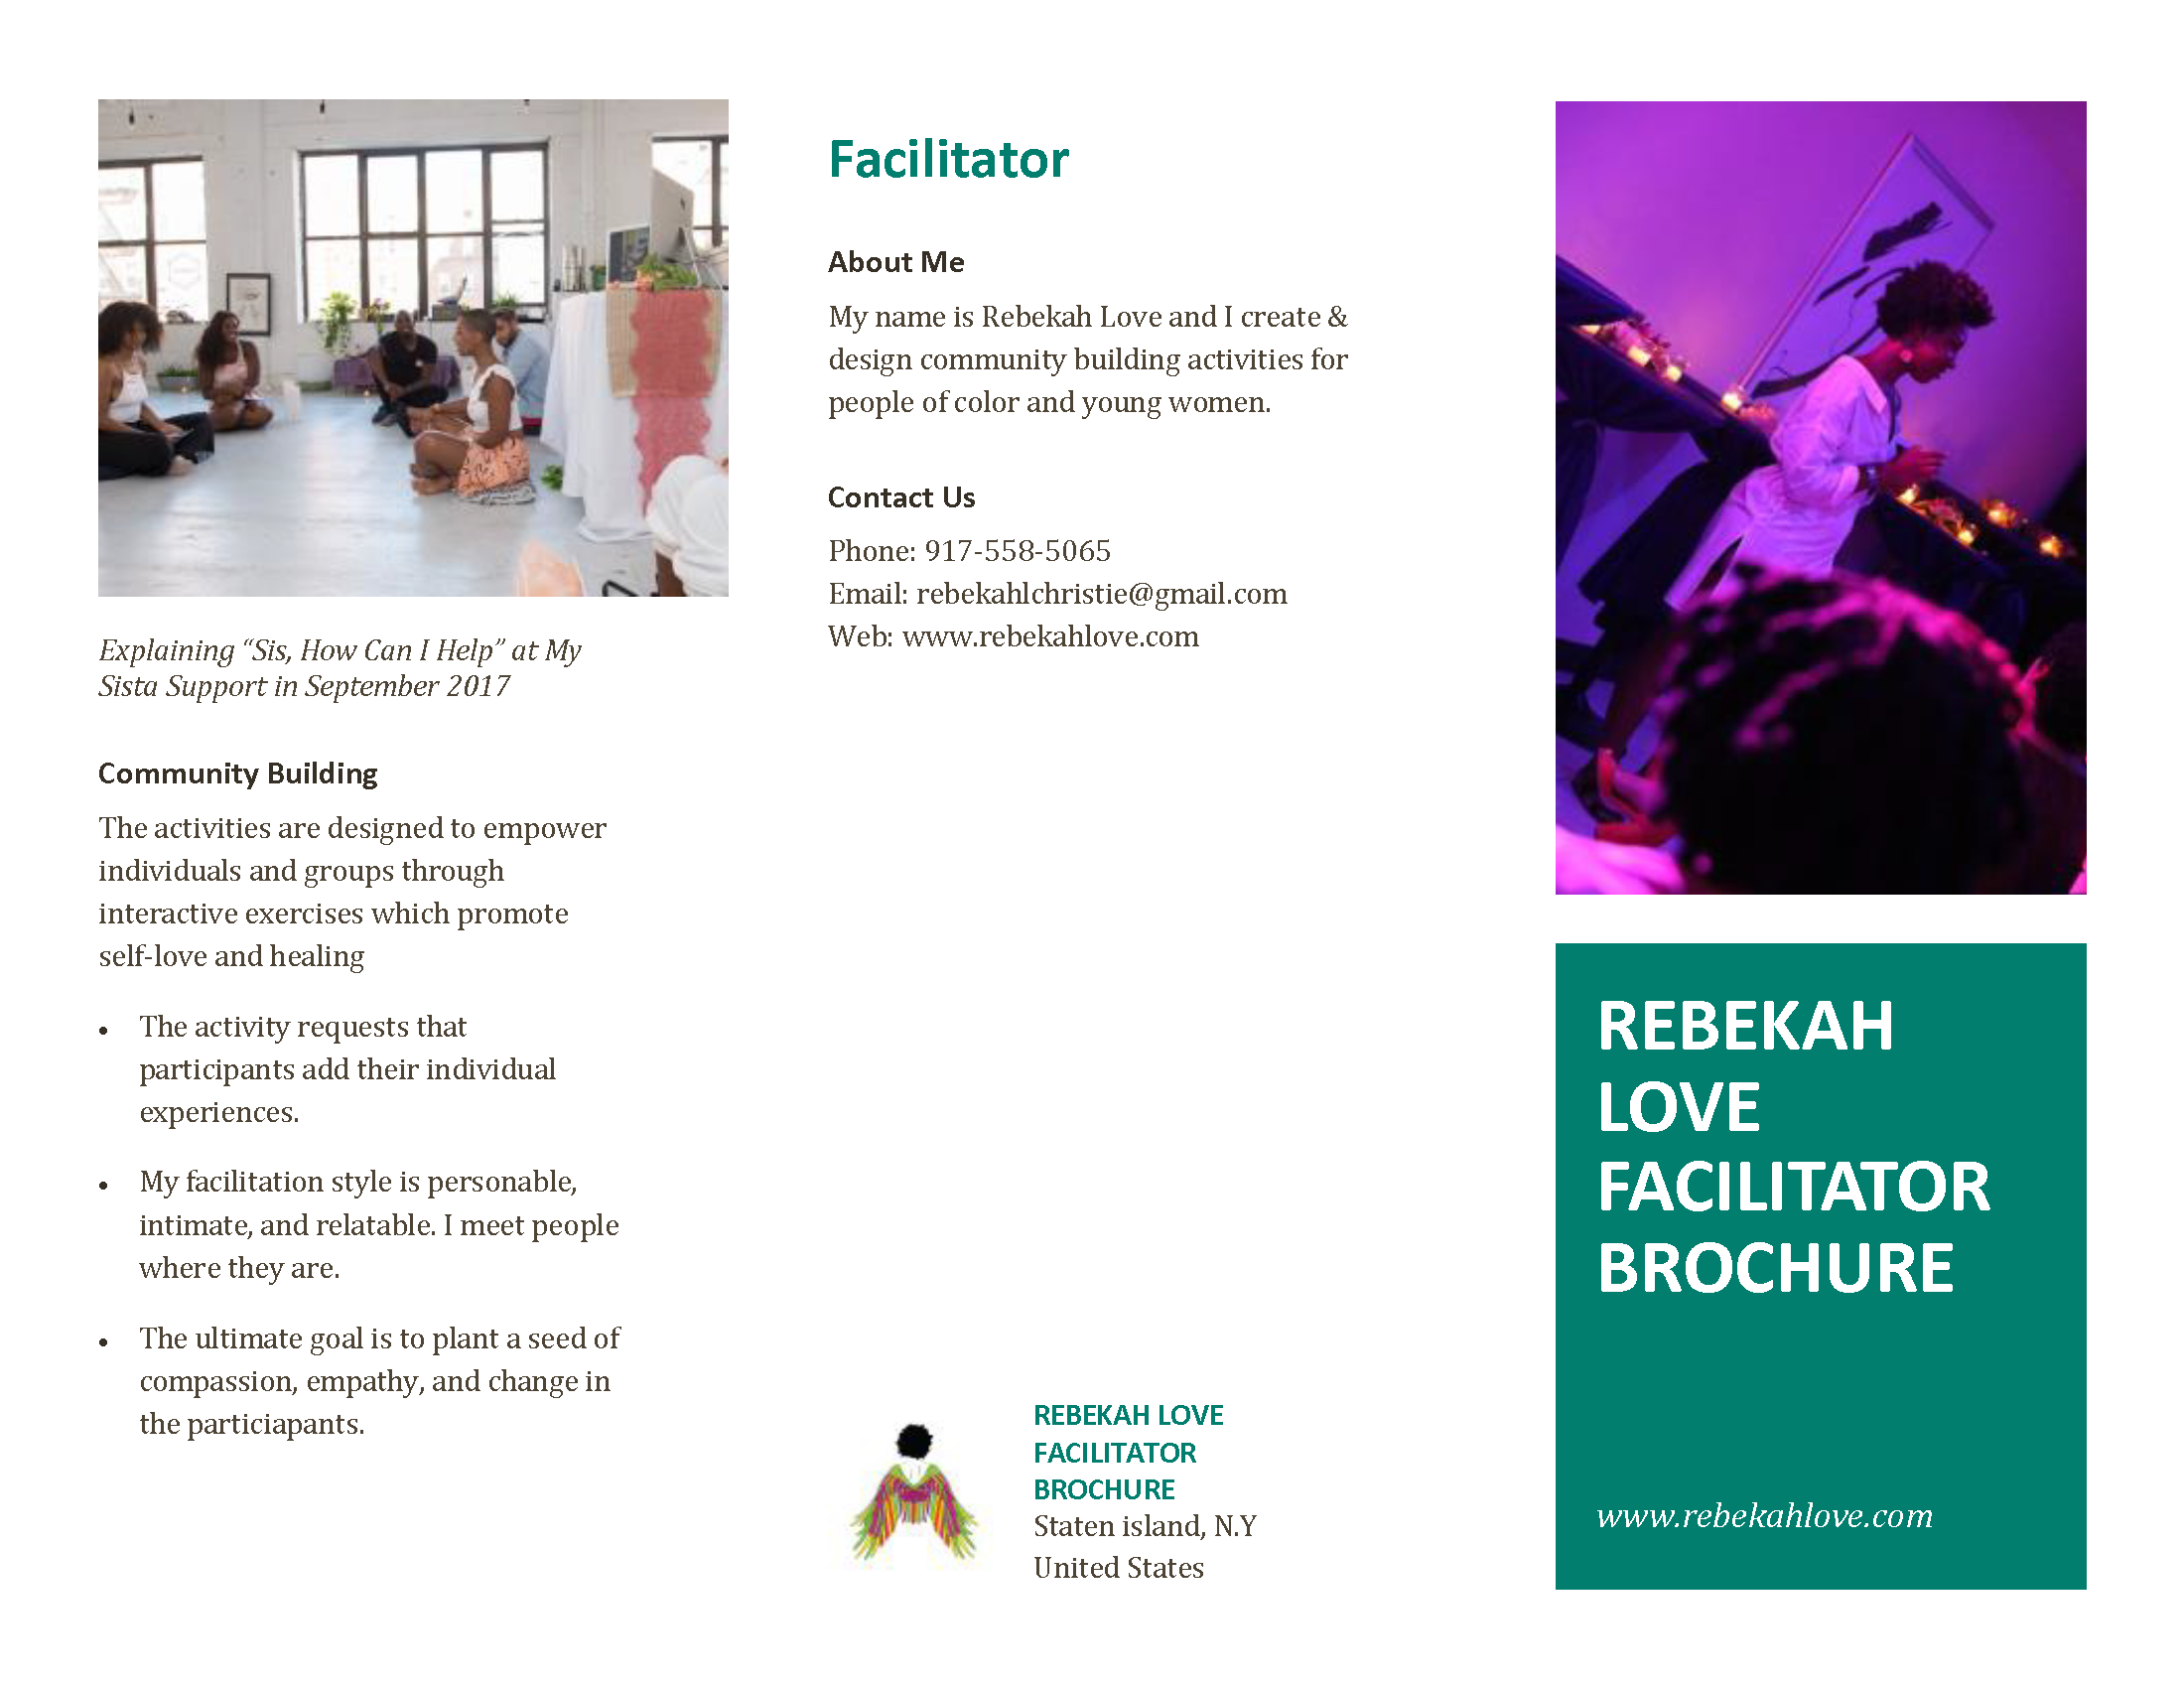 Rebekah Love Facilitator Brochure 1.png